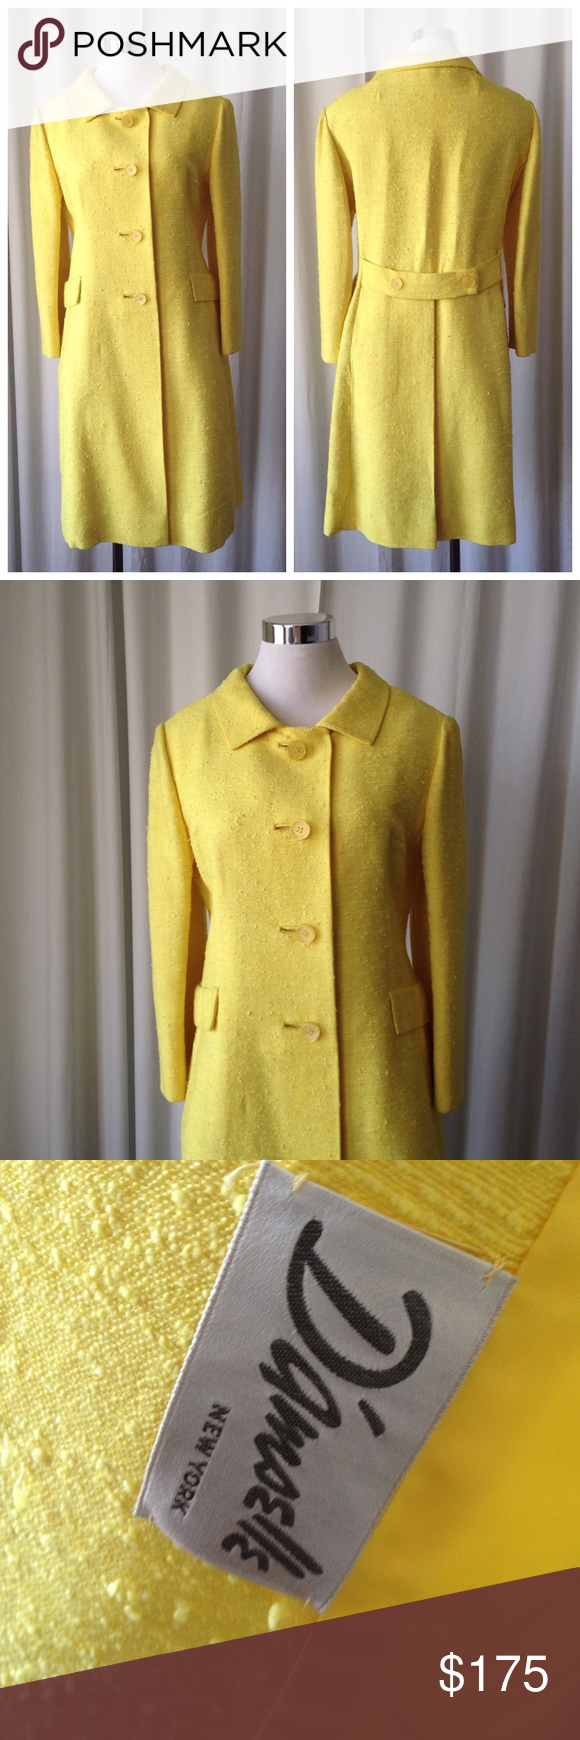 """Vintage 60's D'amselle yellow coat S/M Vintage 60's D'amselle NY bright yellow coat Mod excellent conditions  Made in USA  Measurement  Arm pit to arm pit 20"""" Waist 18"""" Length 39"""" Sleeve 21"""" Shoulder 17"""" D'amselle Jackets & Coats"""